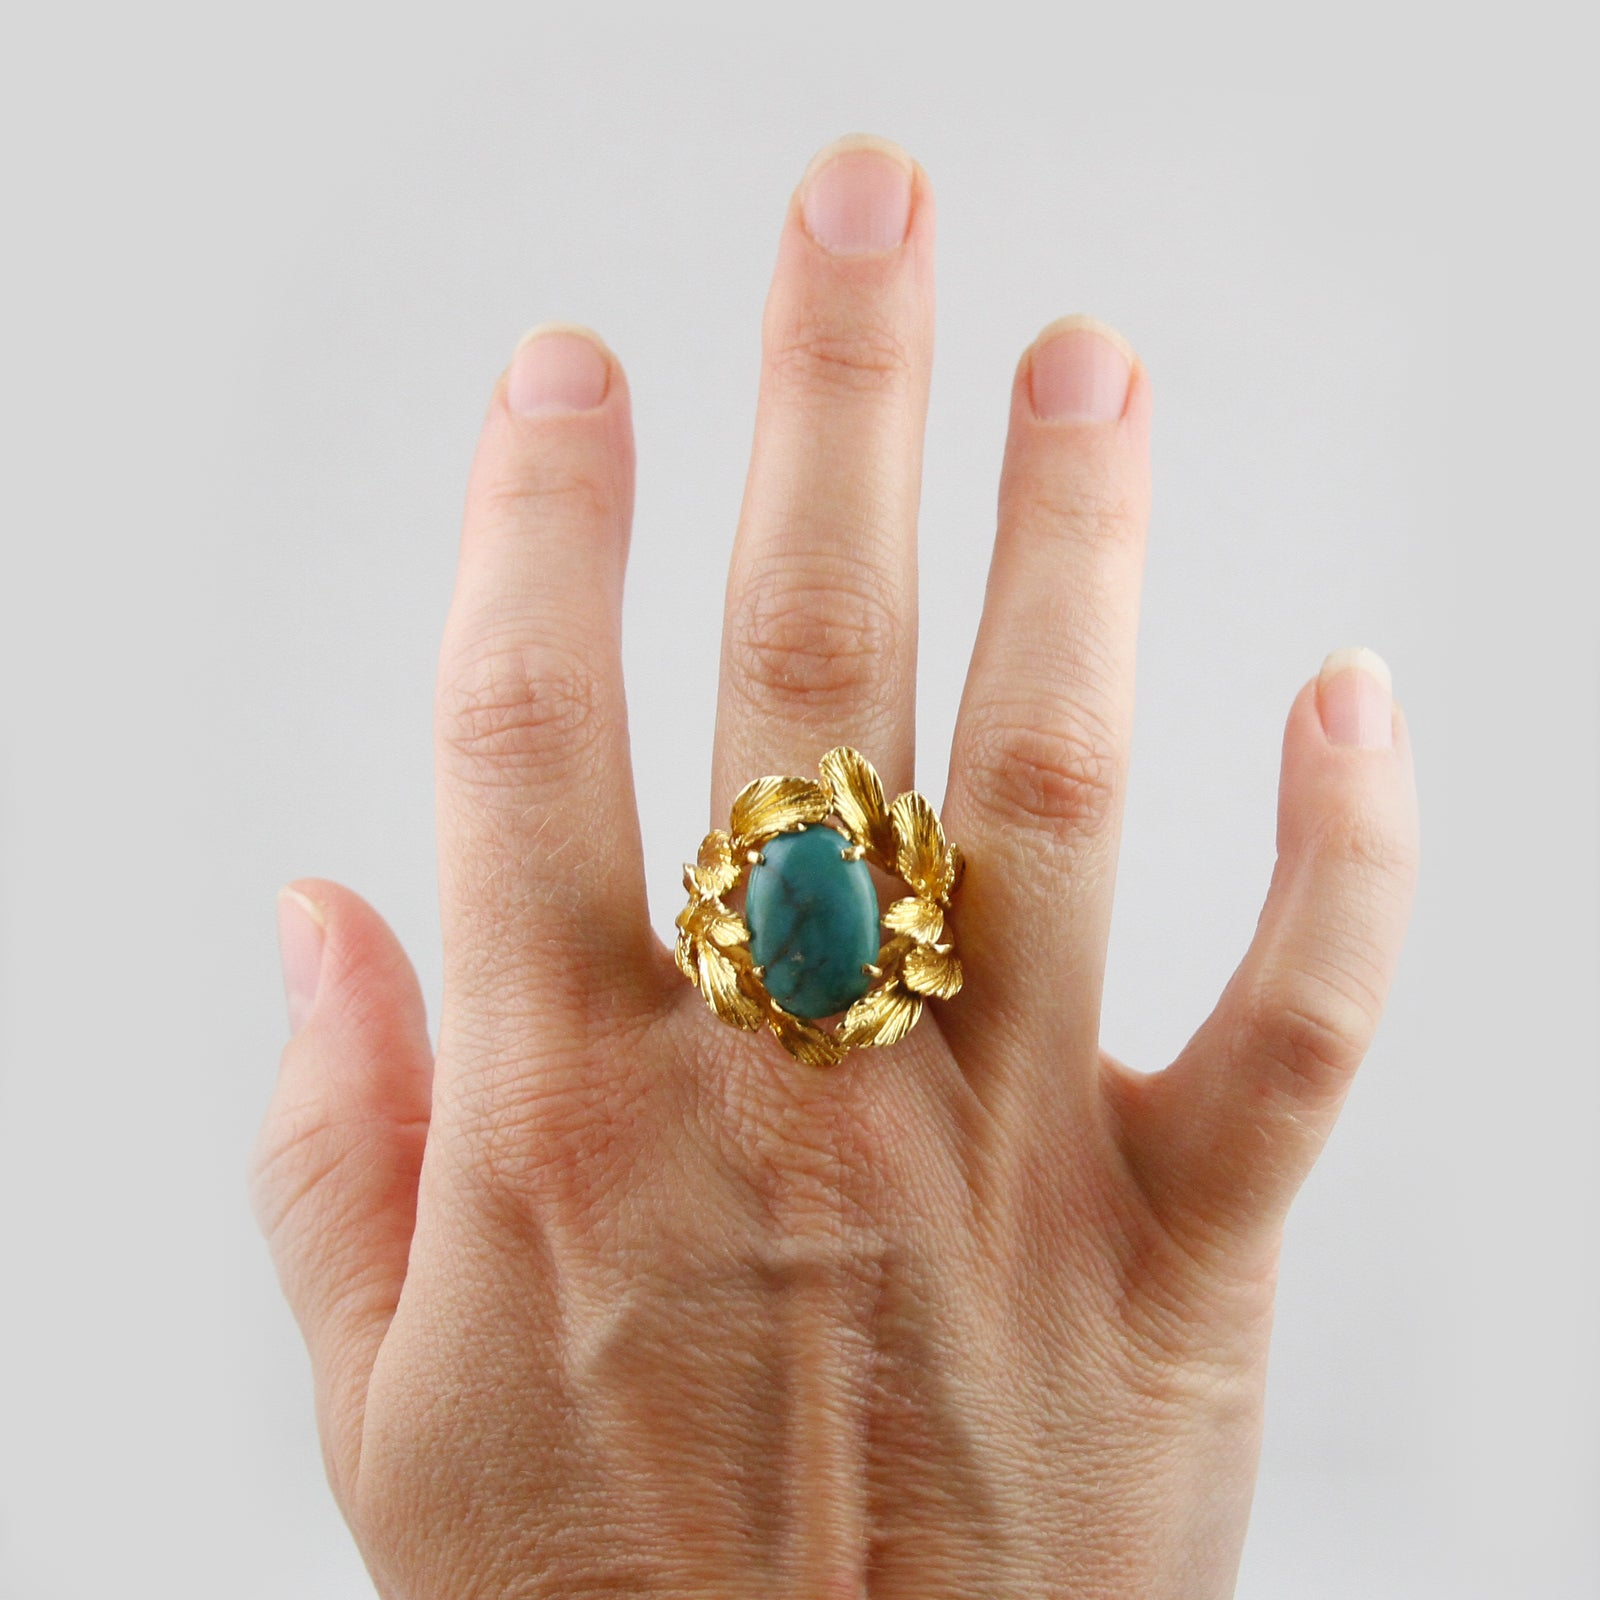 Oval Turquoise Ring with Etched Leaf Design Mounting Crafted in 18k Yellow Gold